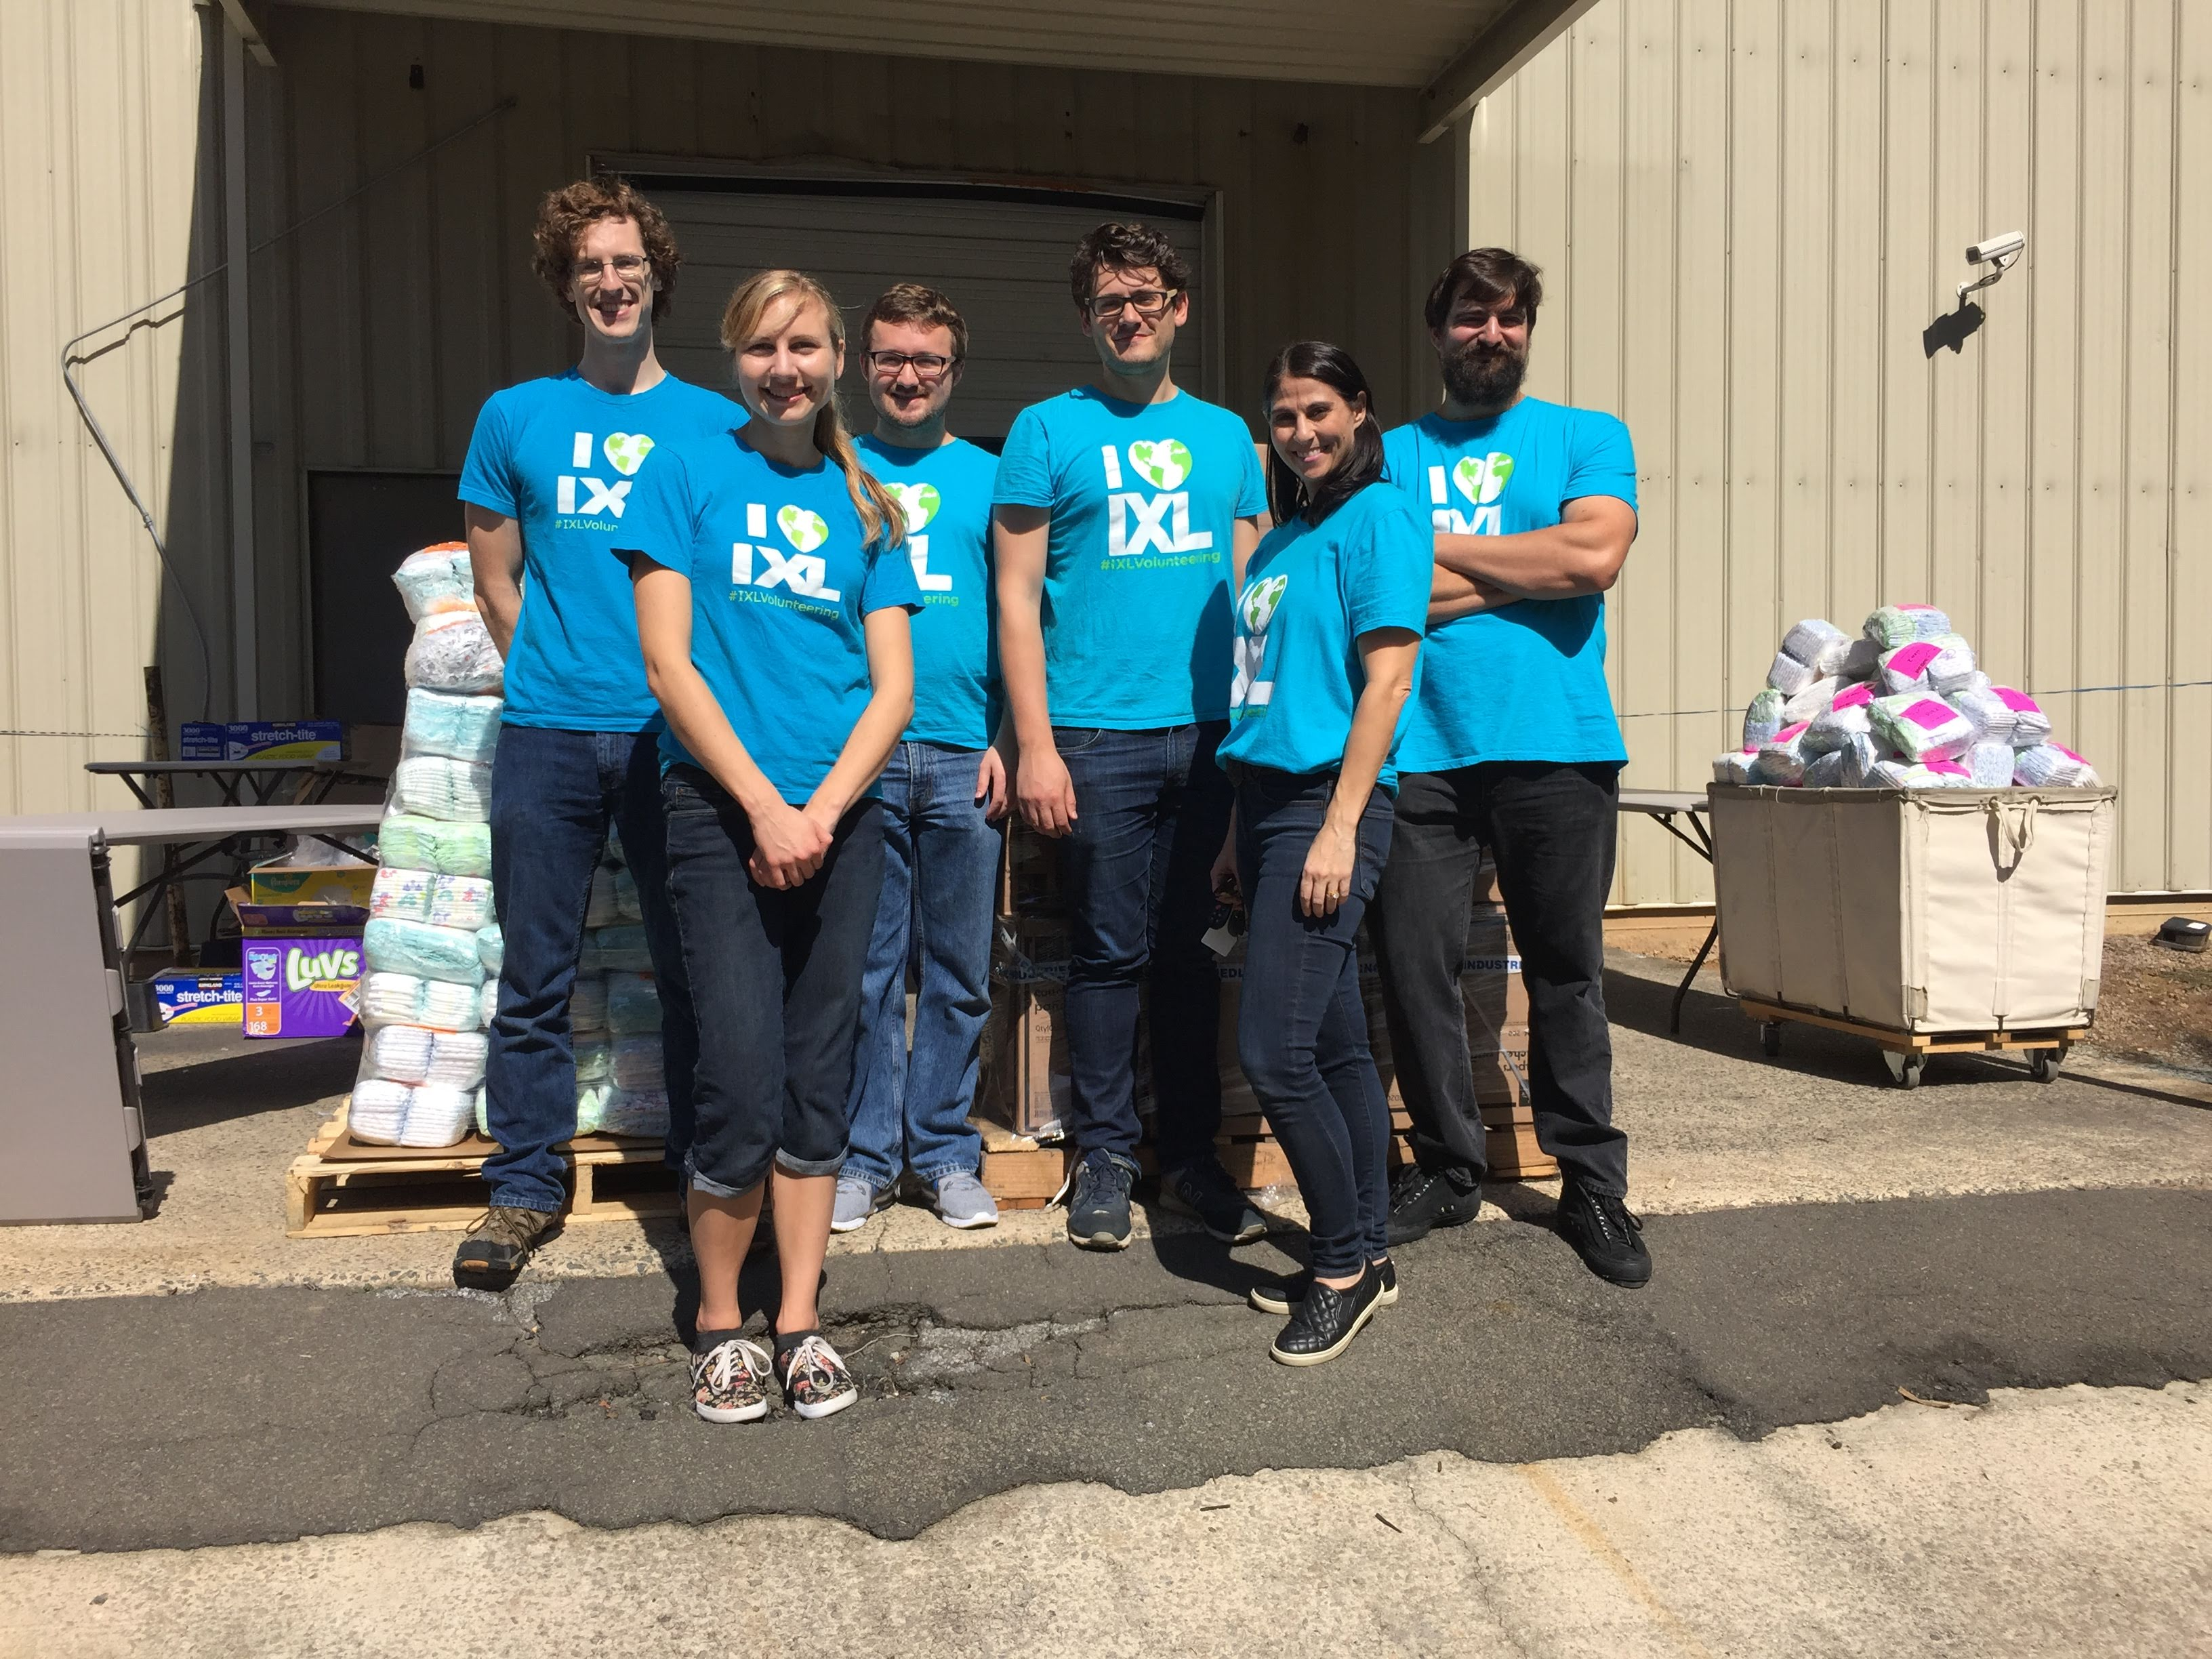 Diaper Duty: IXLers Volunteer at the Diaper Bank of NC